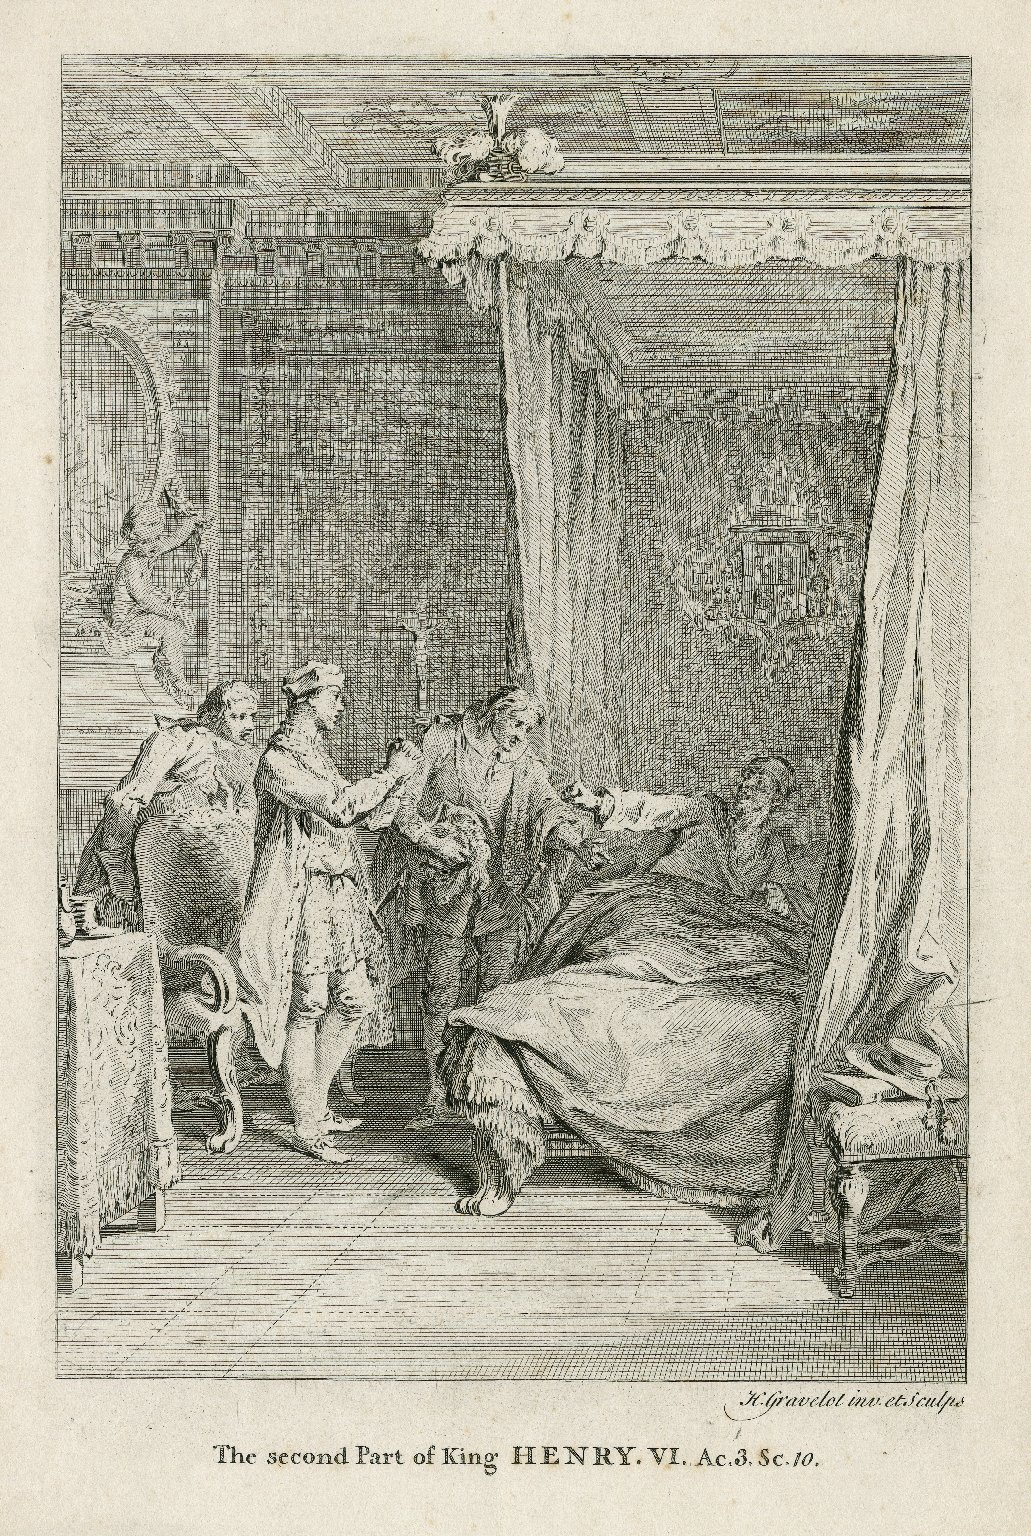 The second part of King Henry VI, ac. 3, sc. 10 [i.e., III, 3] [graphic] / H. Gravelot, inv. et sculps.